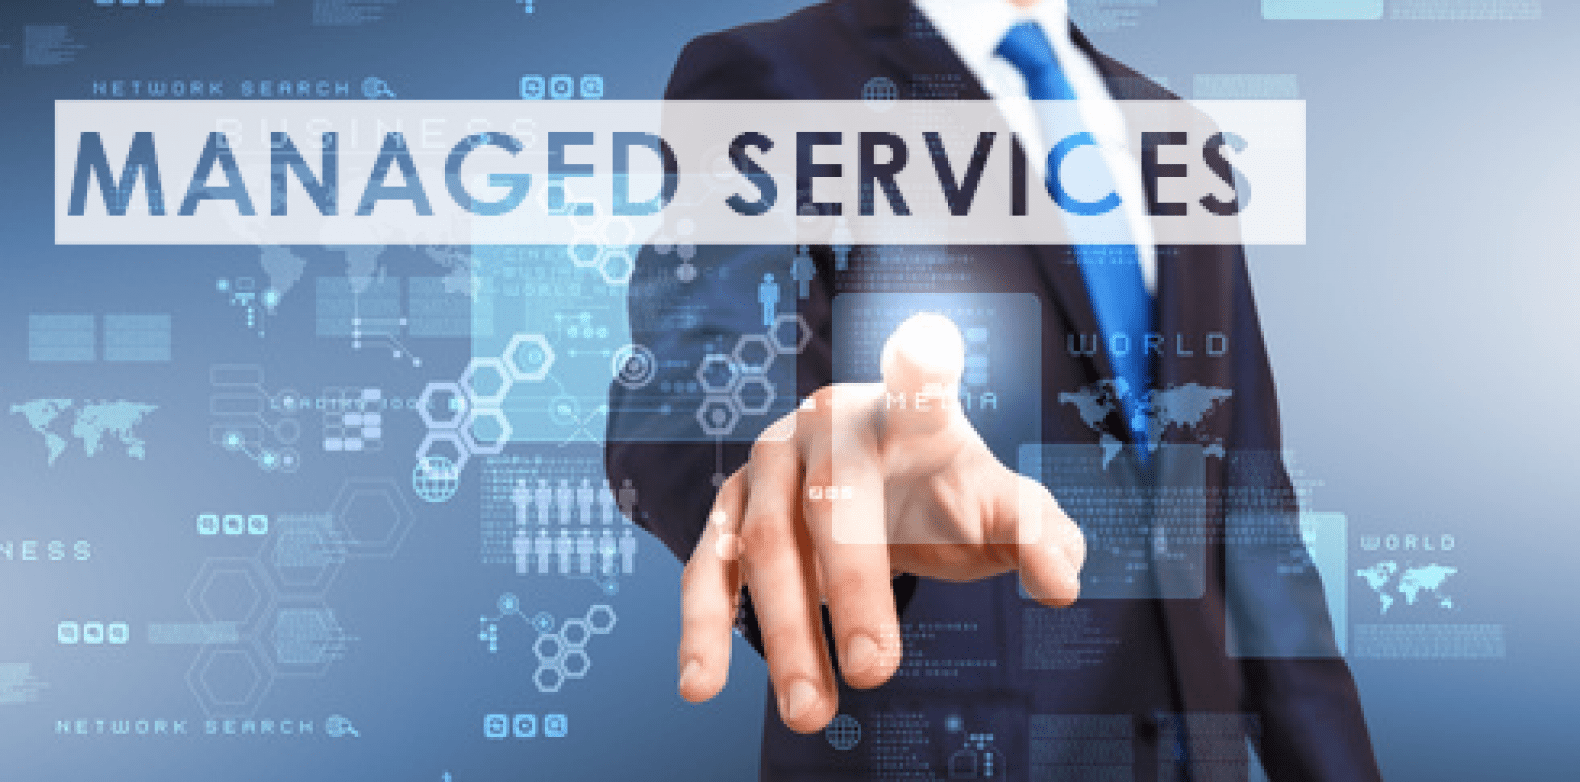 Pei S Managed Services Keep Your Core Business Running Pei